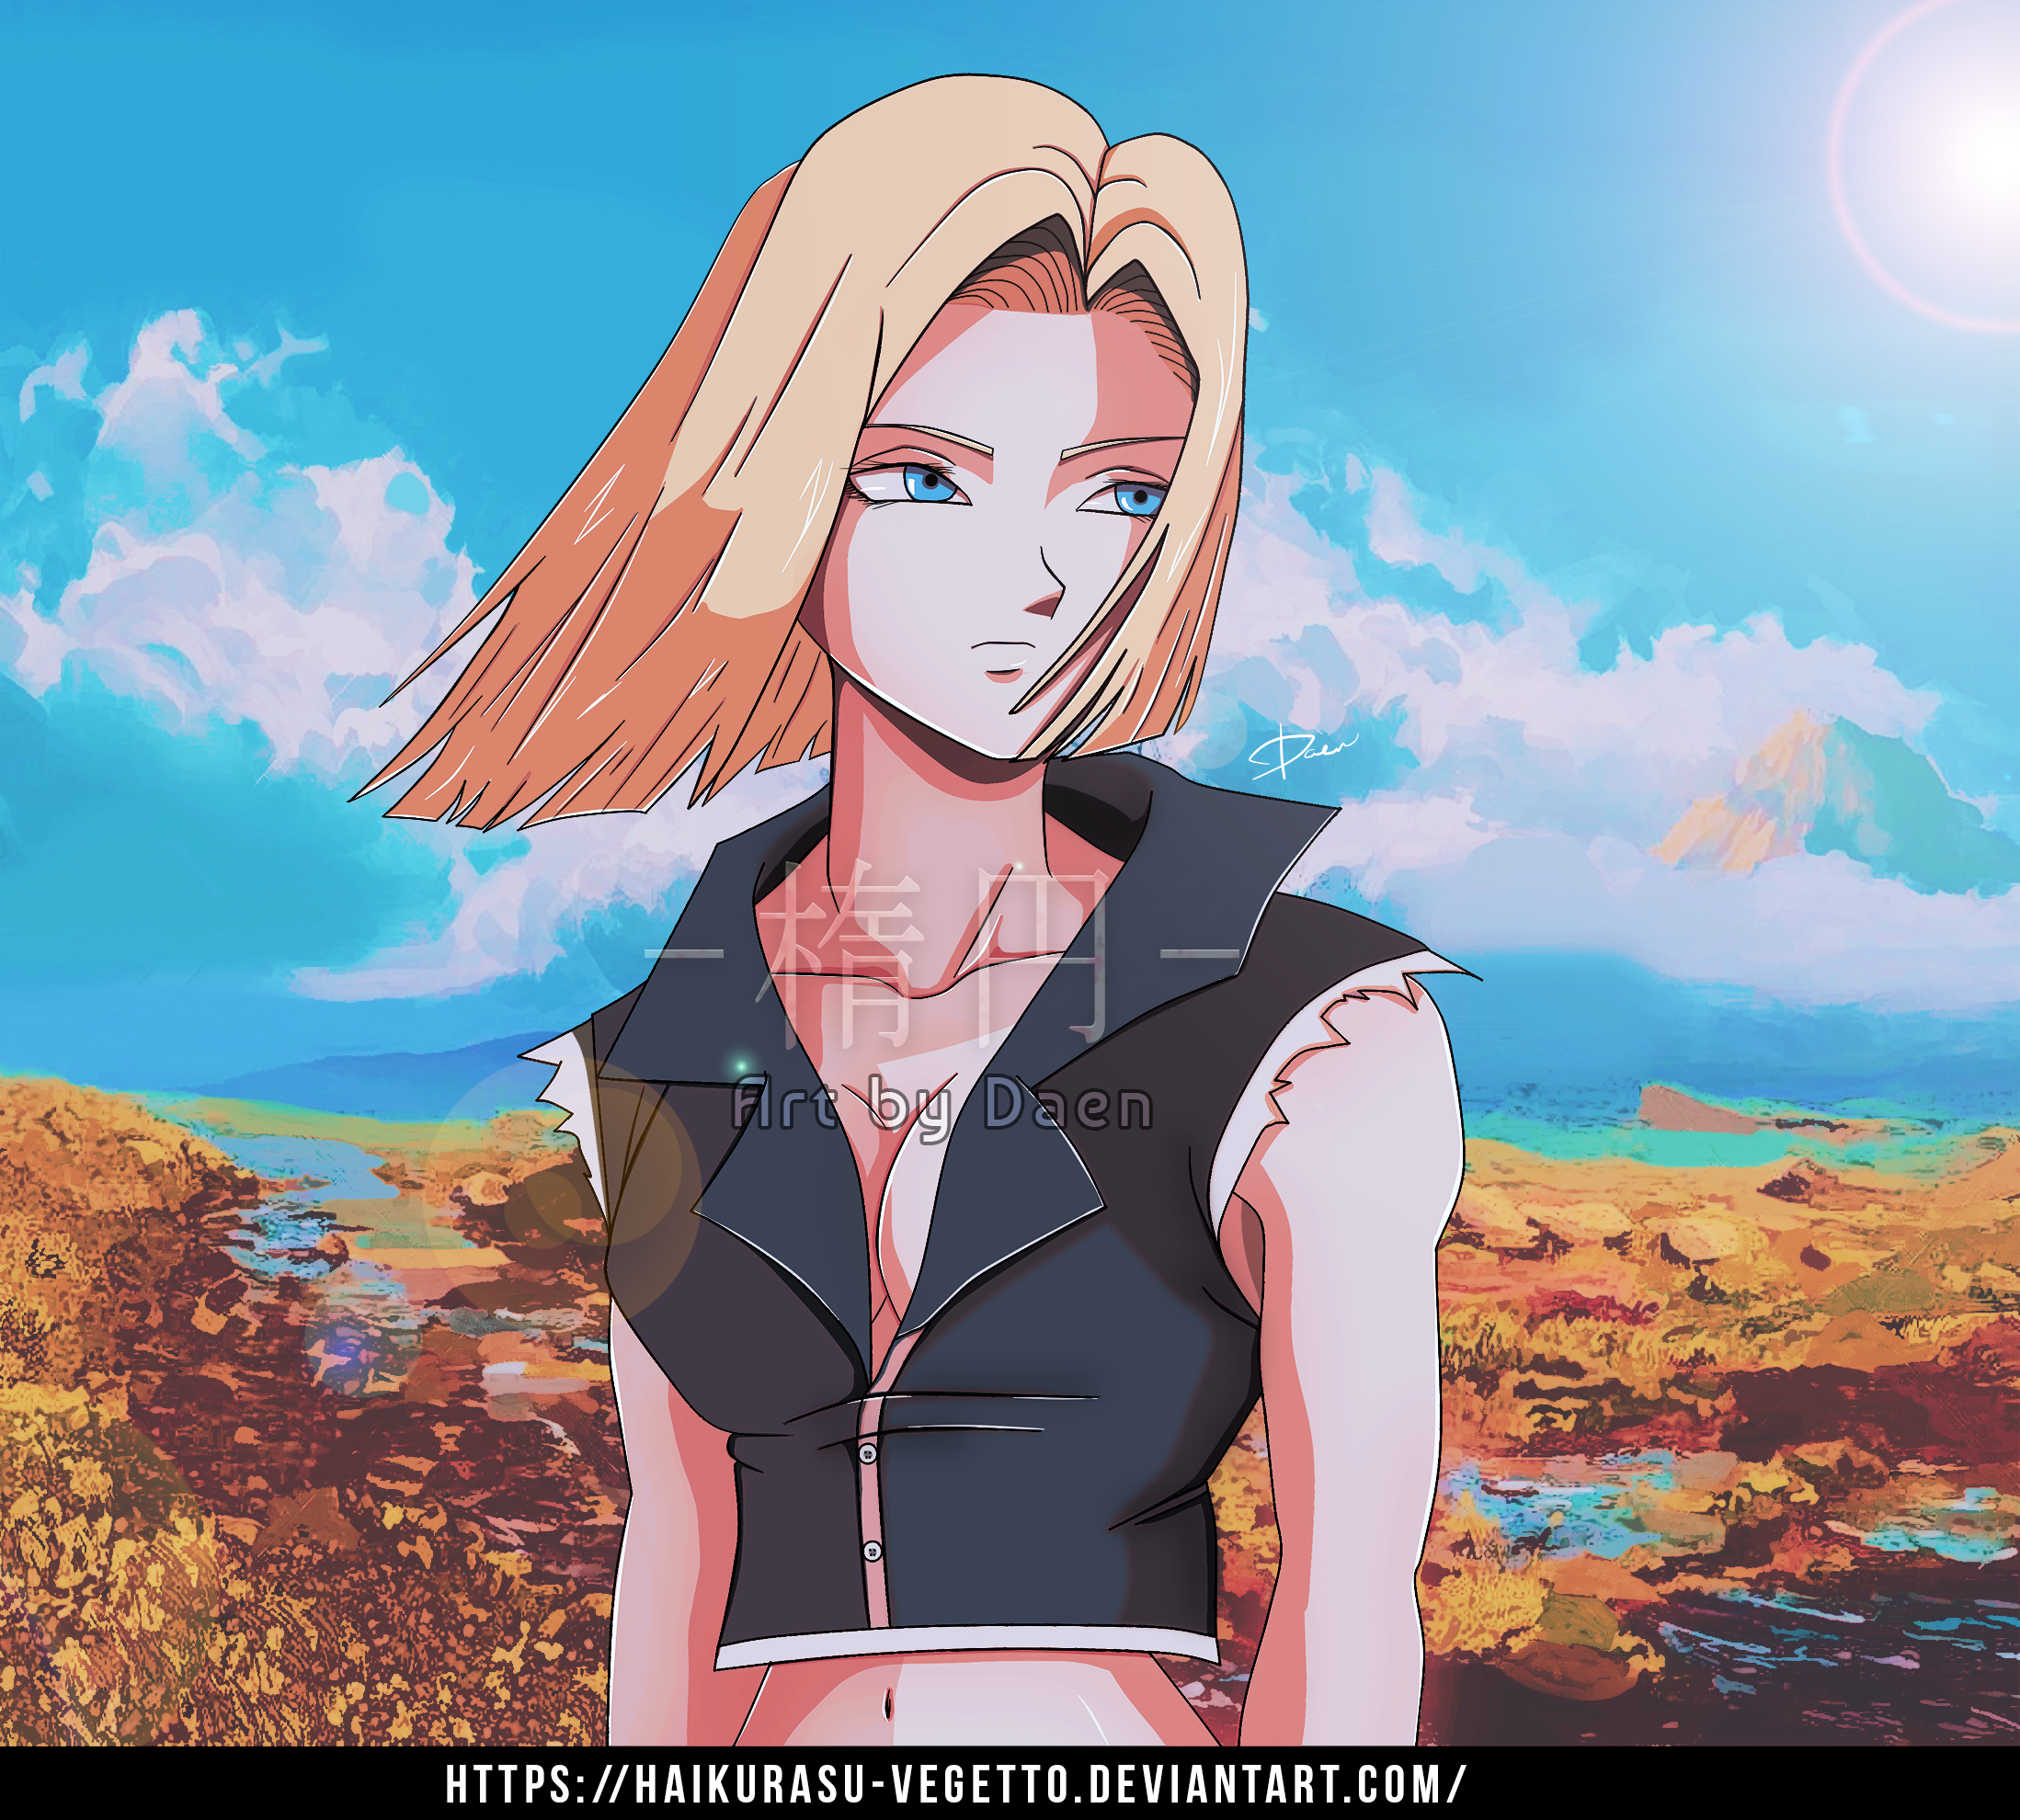 Android 18 And Tail Deviantart: Android 18 By Haikurasu-Vegetto On DeviantArt